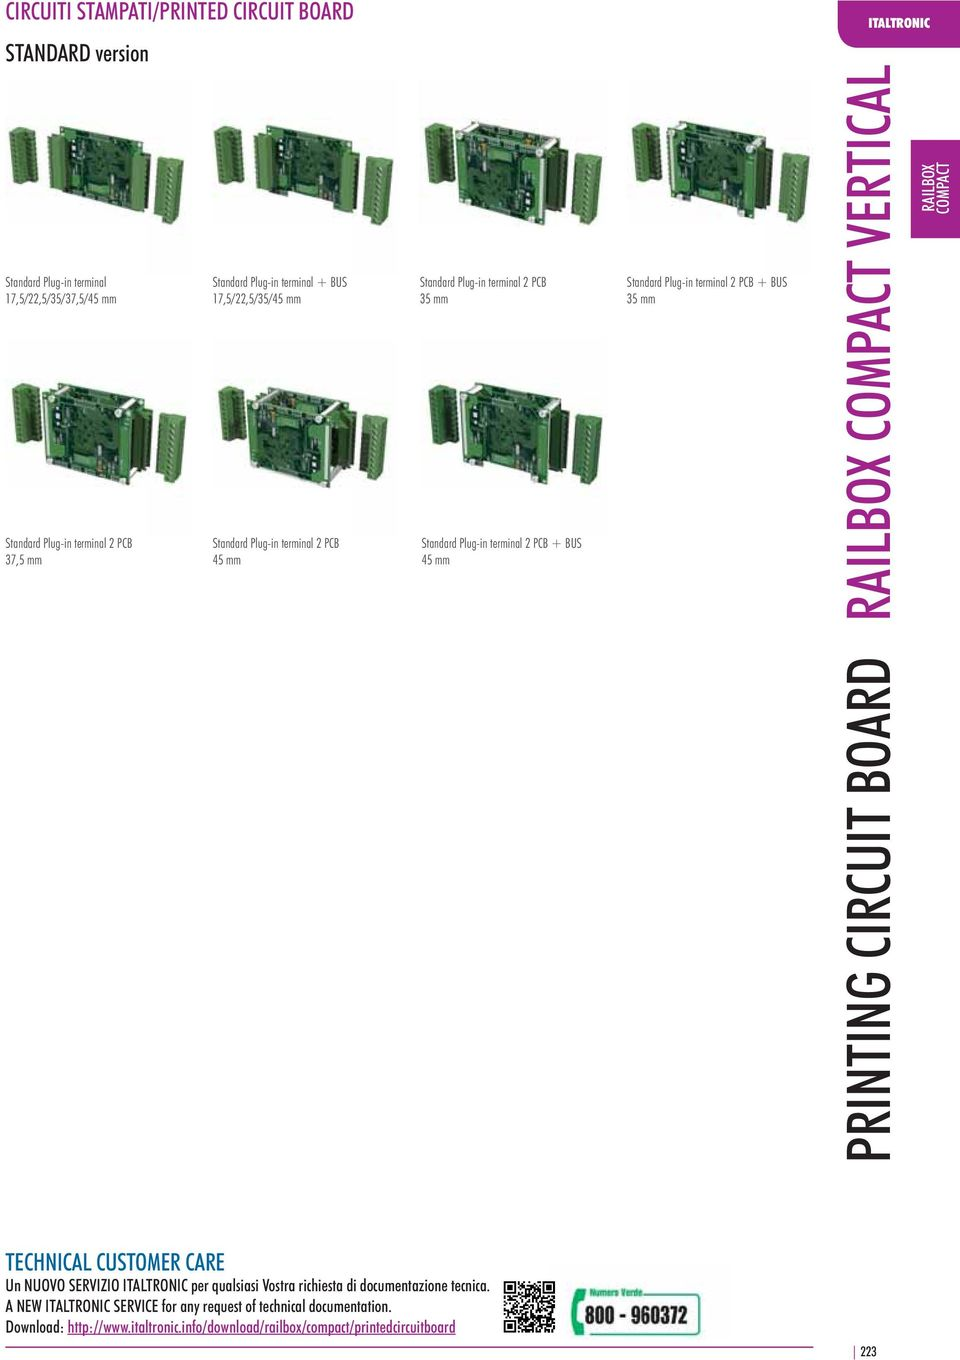 Standard Plug-in terminal 2 PCB + BUS 35 mm RAILBOX PRINTING CIRCUIT BOARD TECHNICAL CUSTOMER CARE Un NUOVO SERVIZIO ITALTRONIC per qualsiasi Vostra richiesta di